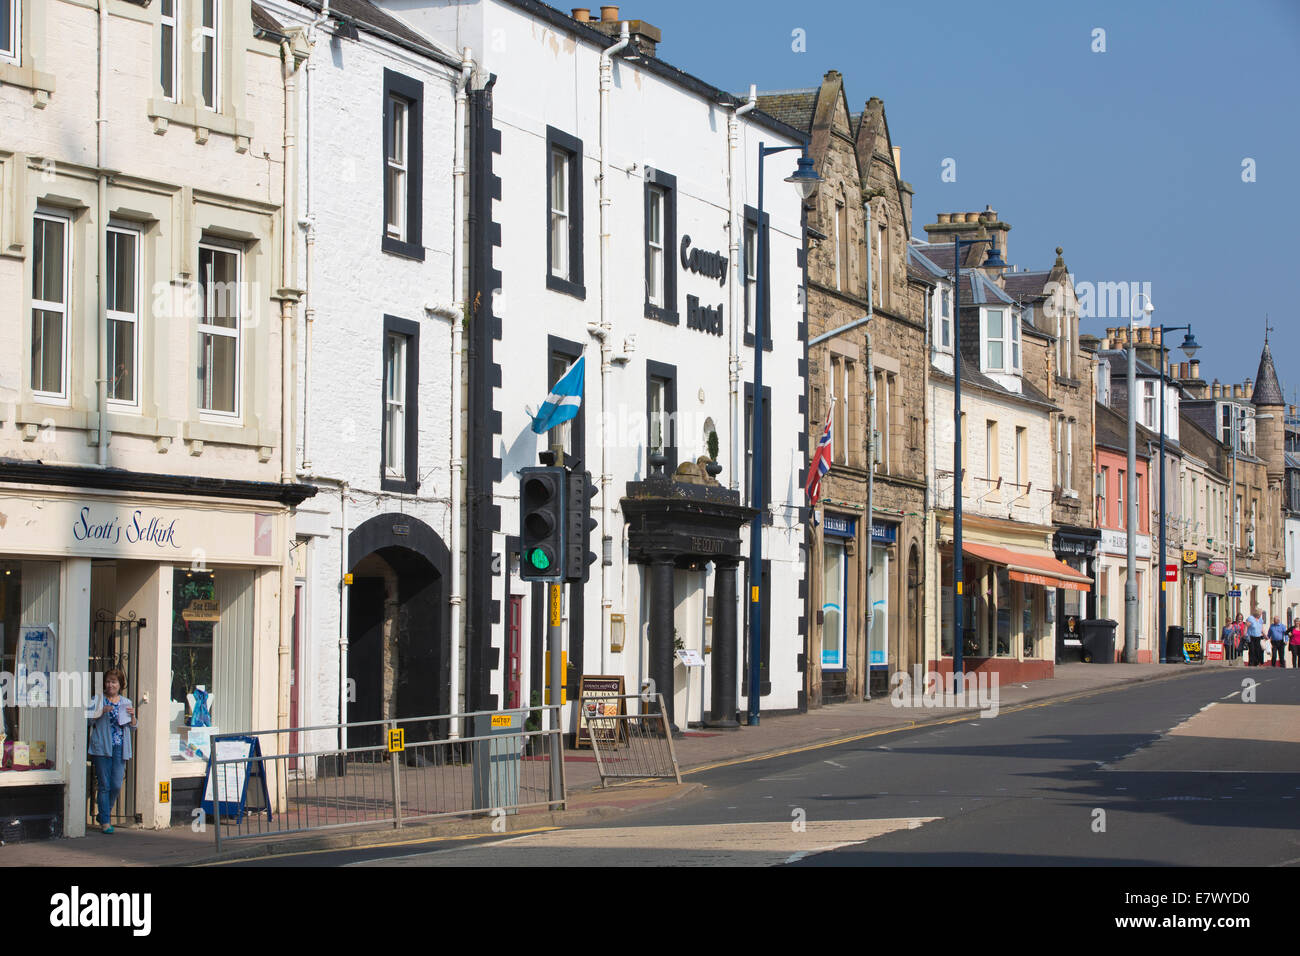 High Street, Selkirk, The Royal and Ancient Burgh of Selkirk, Scottish Borders, Scotland, UK - Stock Image